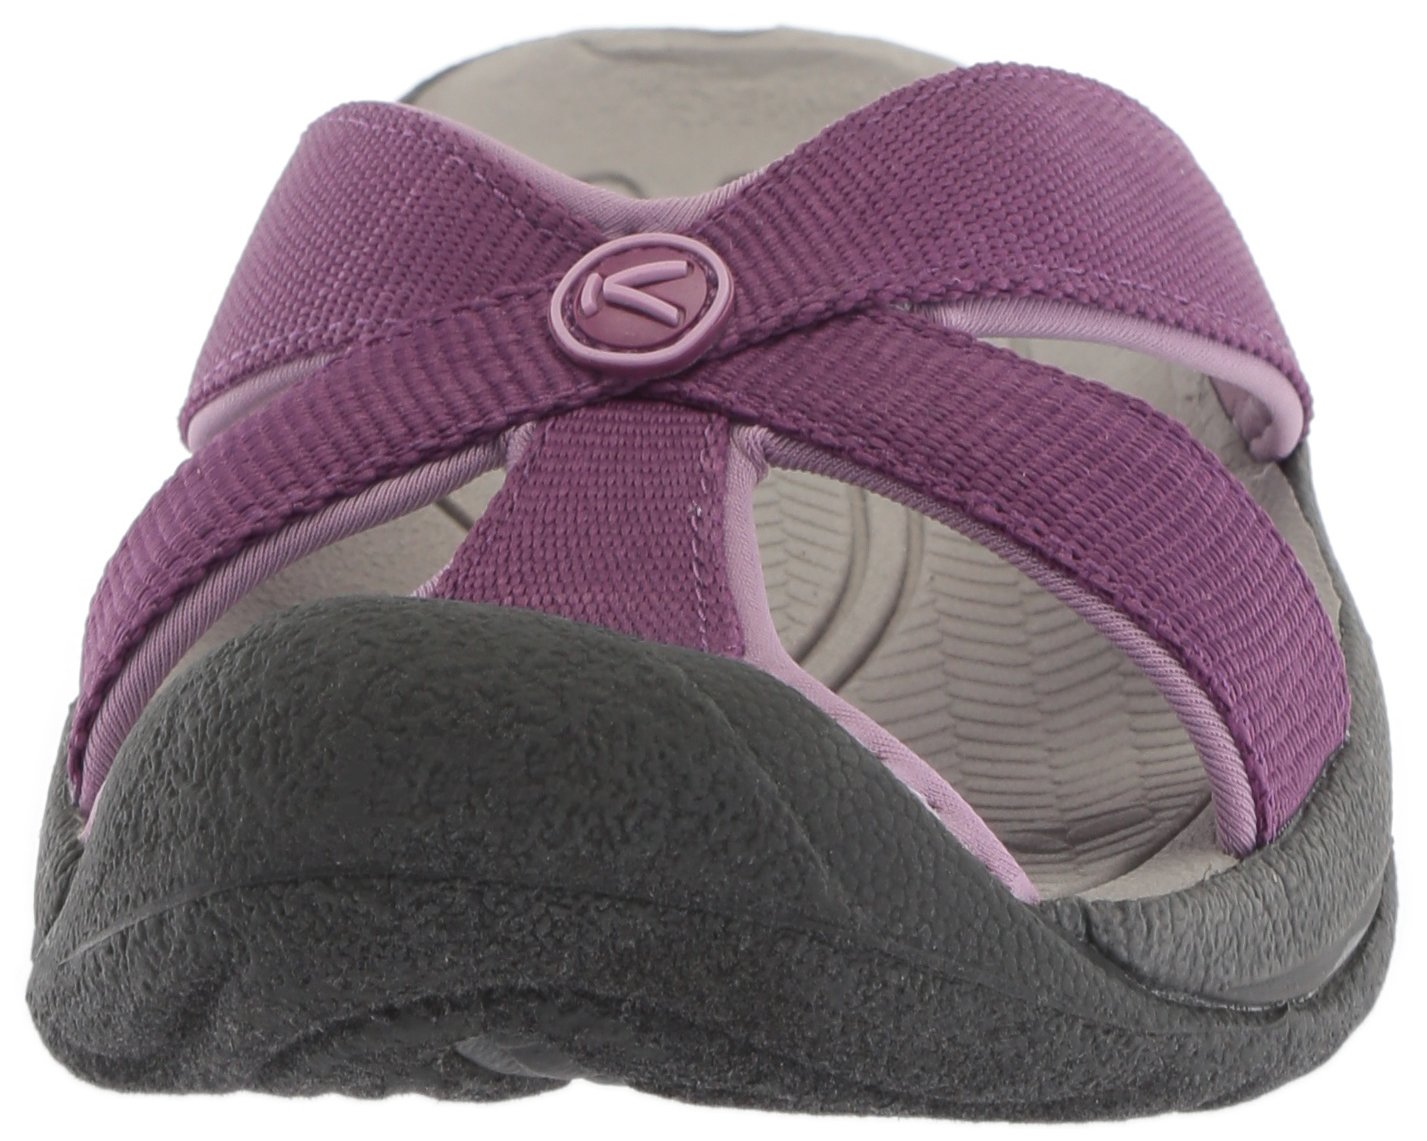 KEEN Women's Bali Sandals B06ZYRVHY1 Herb 7 B(M) US|Grape Kiss/Lavendar Herb B06ZYRVHY1 efddbf